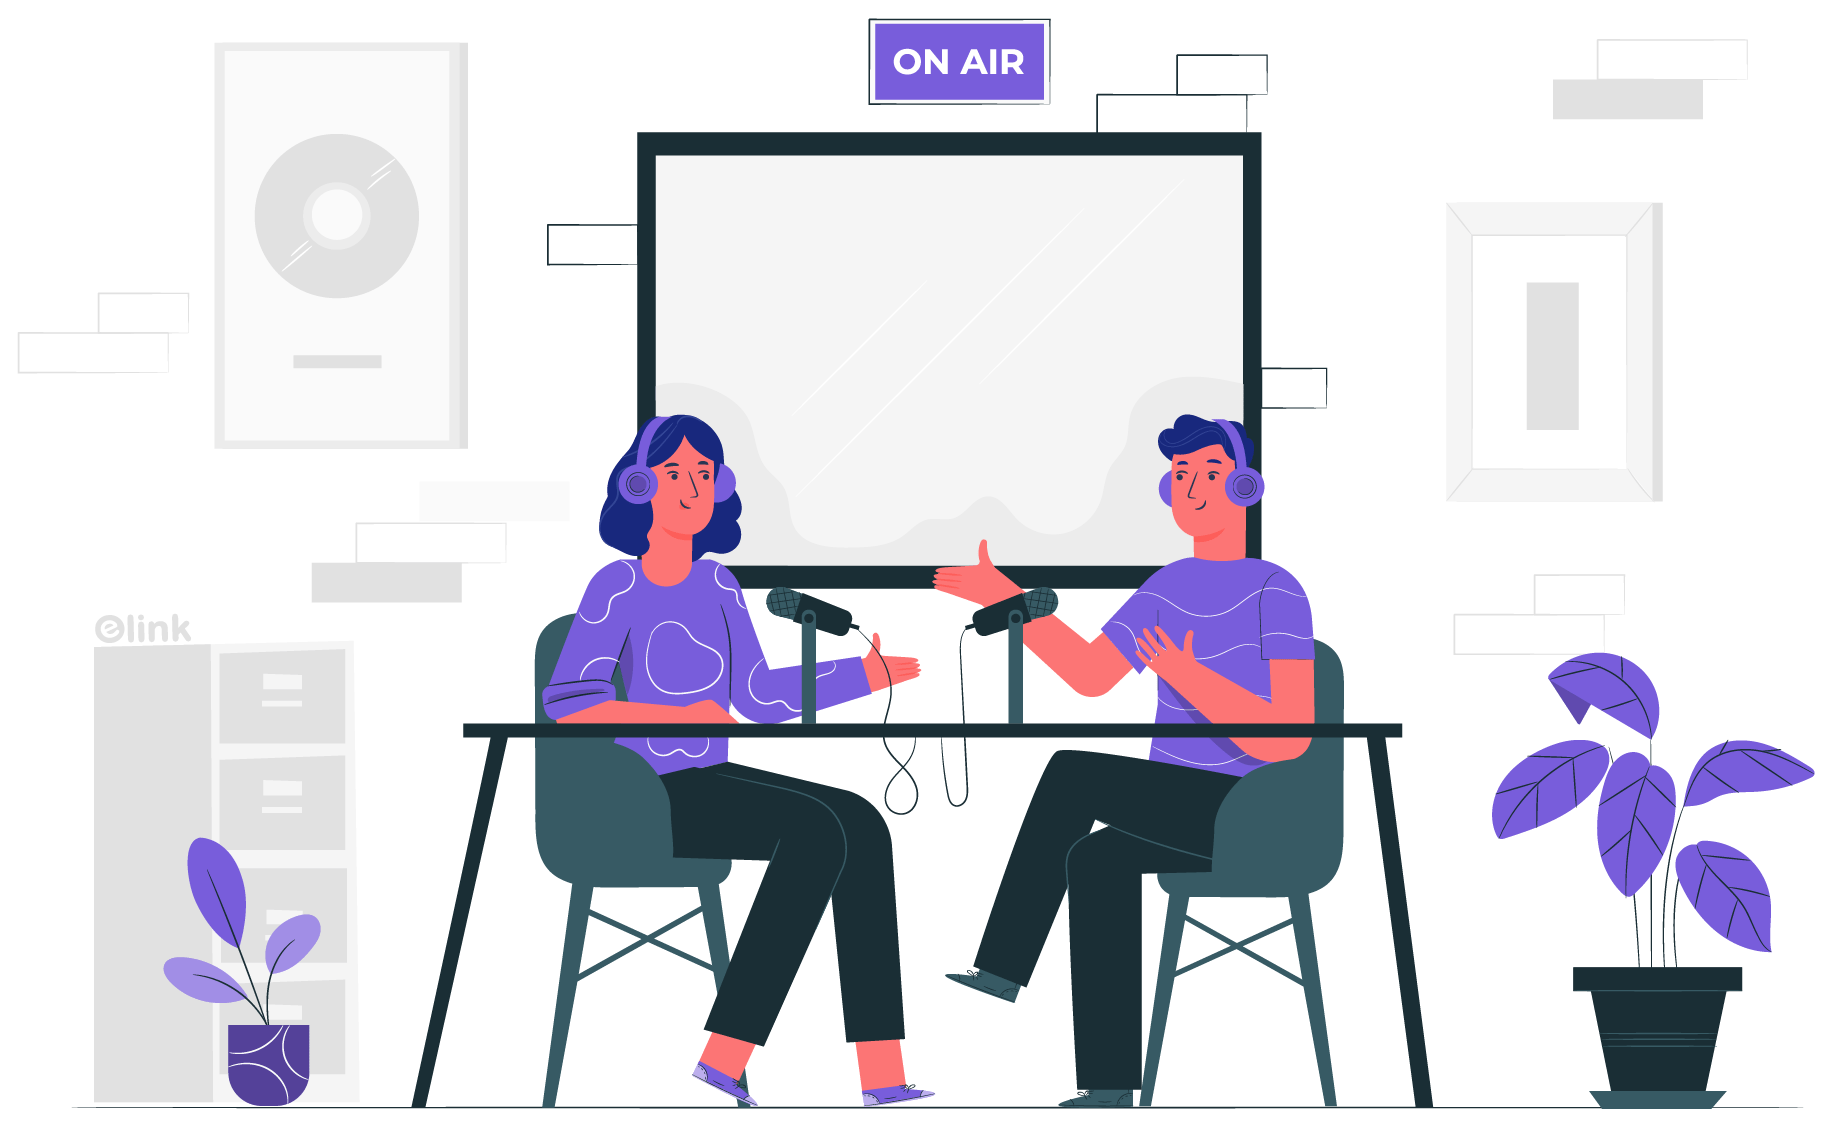 Podcasting as a small business idea